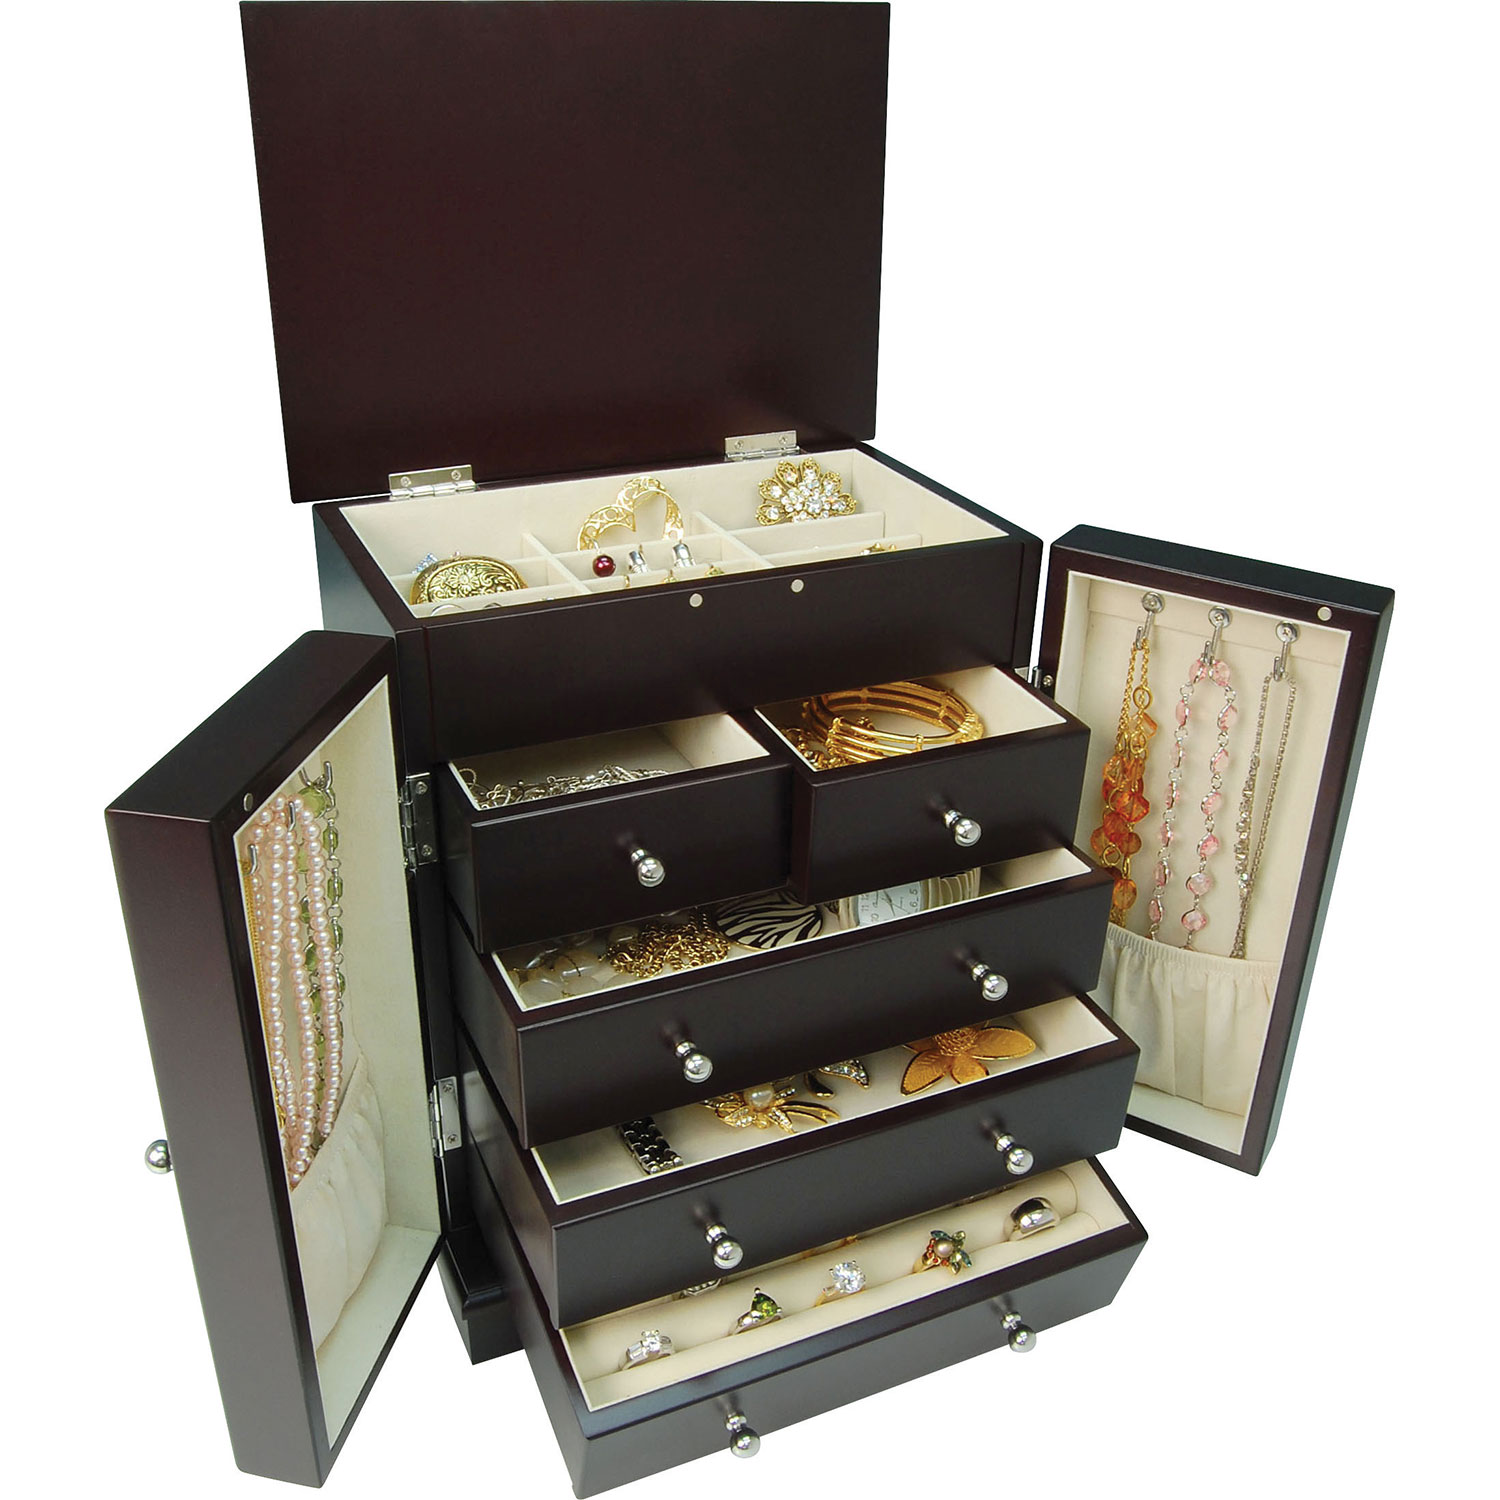 Gunther Mele Natasha Jewelry Box Java Jewelry Boxes Best Buy